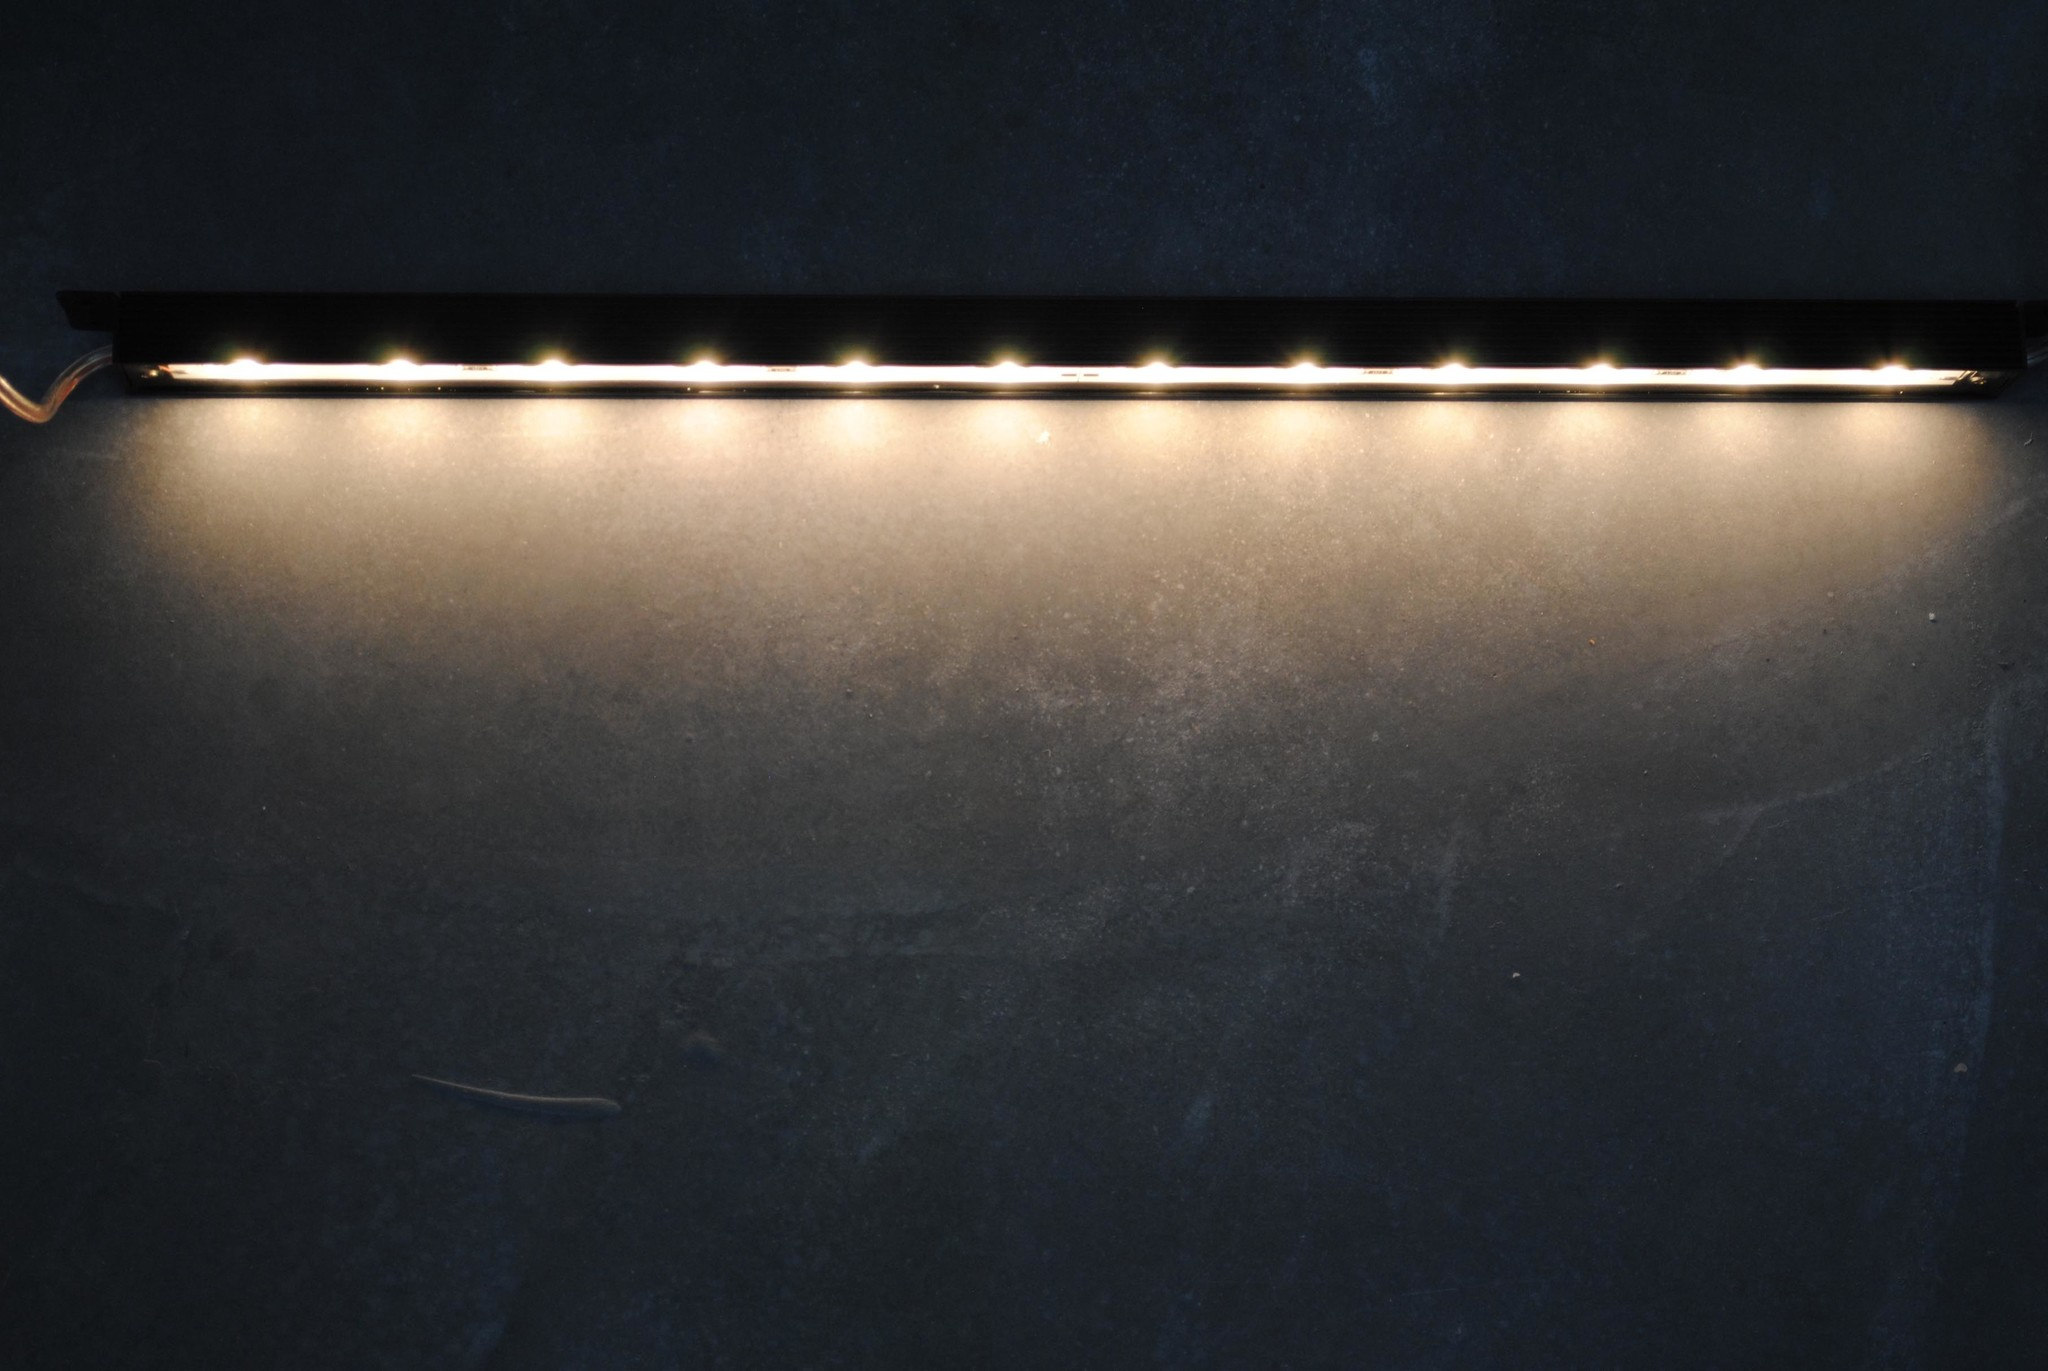 LEDBAR PRO 50 cm Warm White IP68 Waterproof 12W 24V